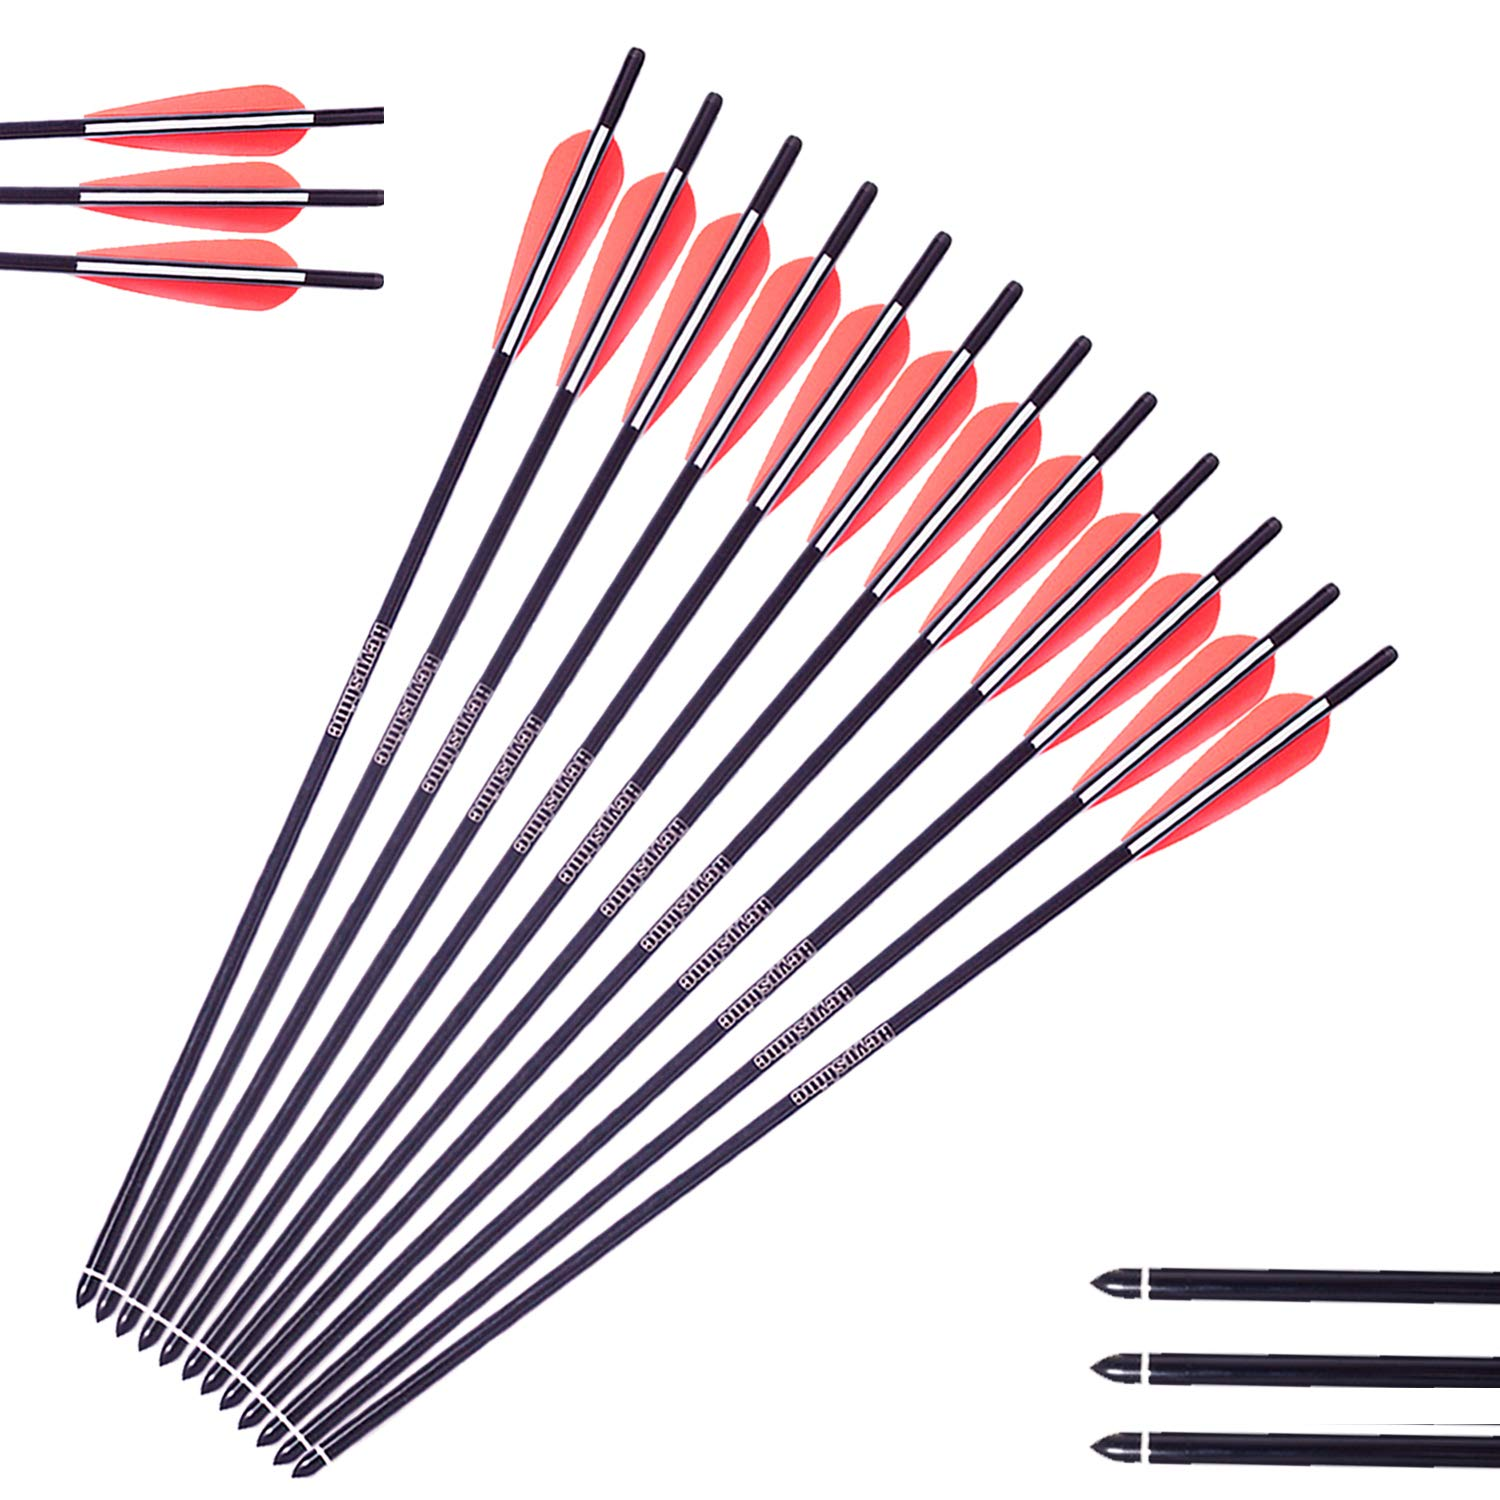 Heypshine Aluminum Arrows 20'' Inch, 310 Spine, Practice Archery Arrows, Target Arrows, Carbon Arrow, Archery Arrows, Youth Arrows, Arrow Shafts, Recurve Arrows (Pack of 12) by Heypshine